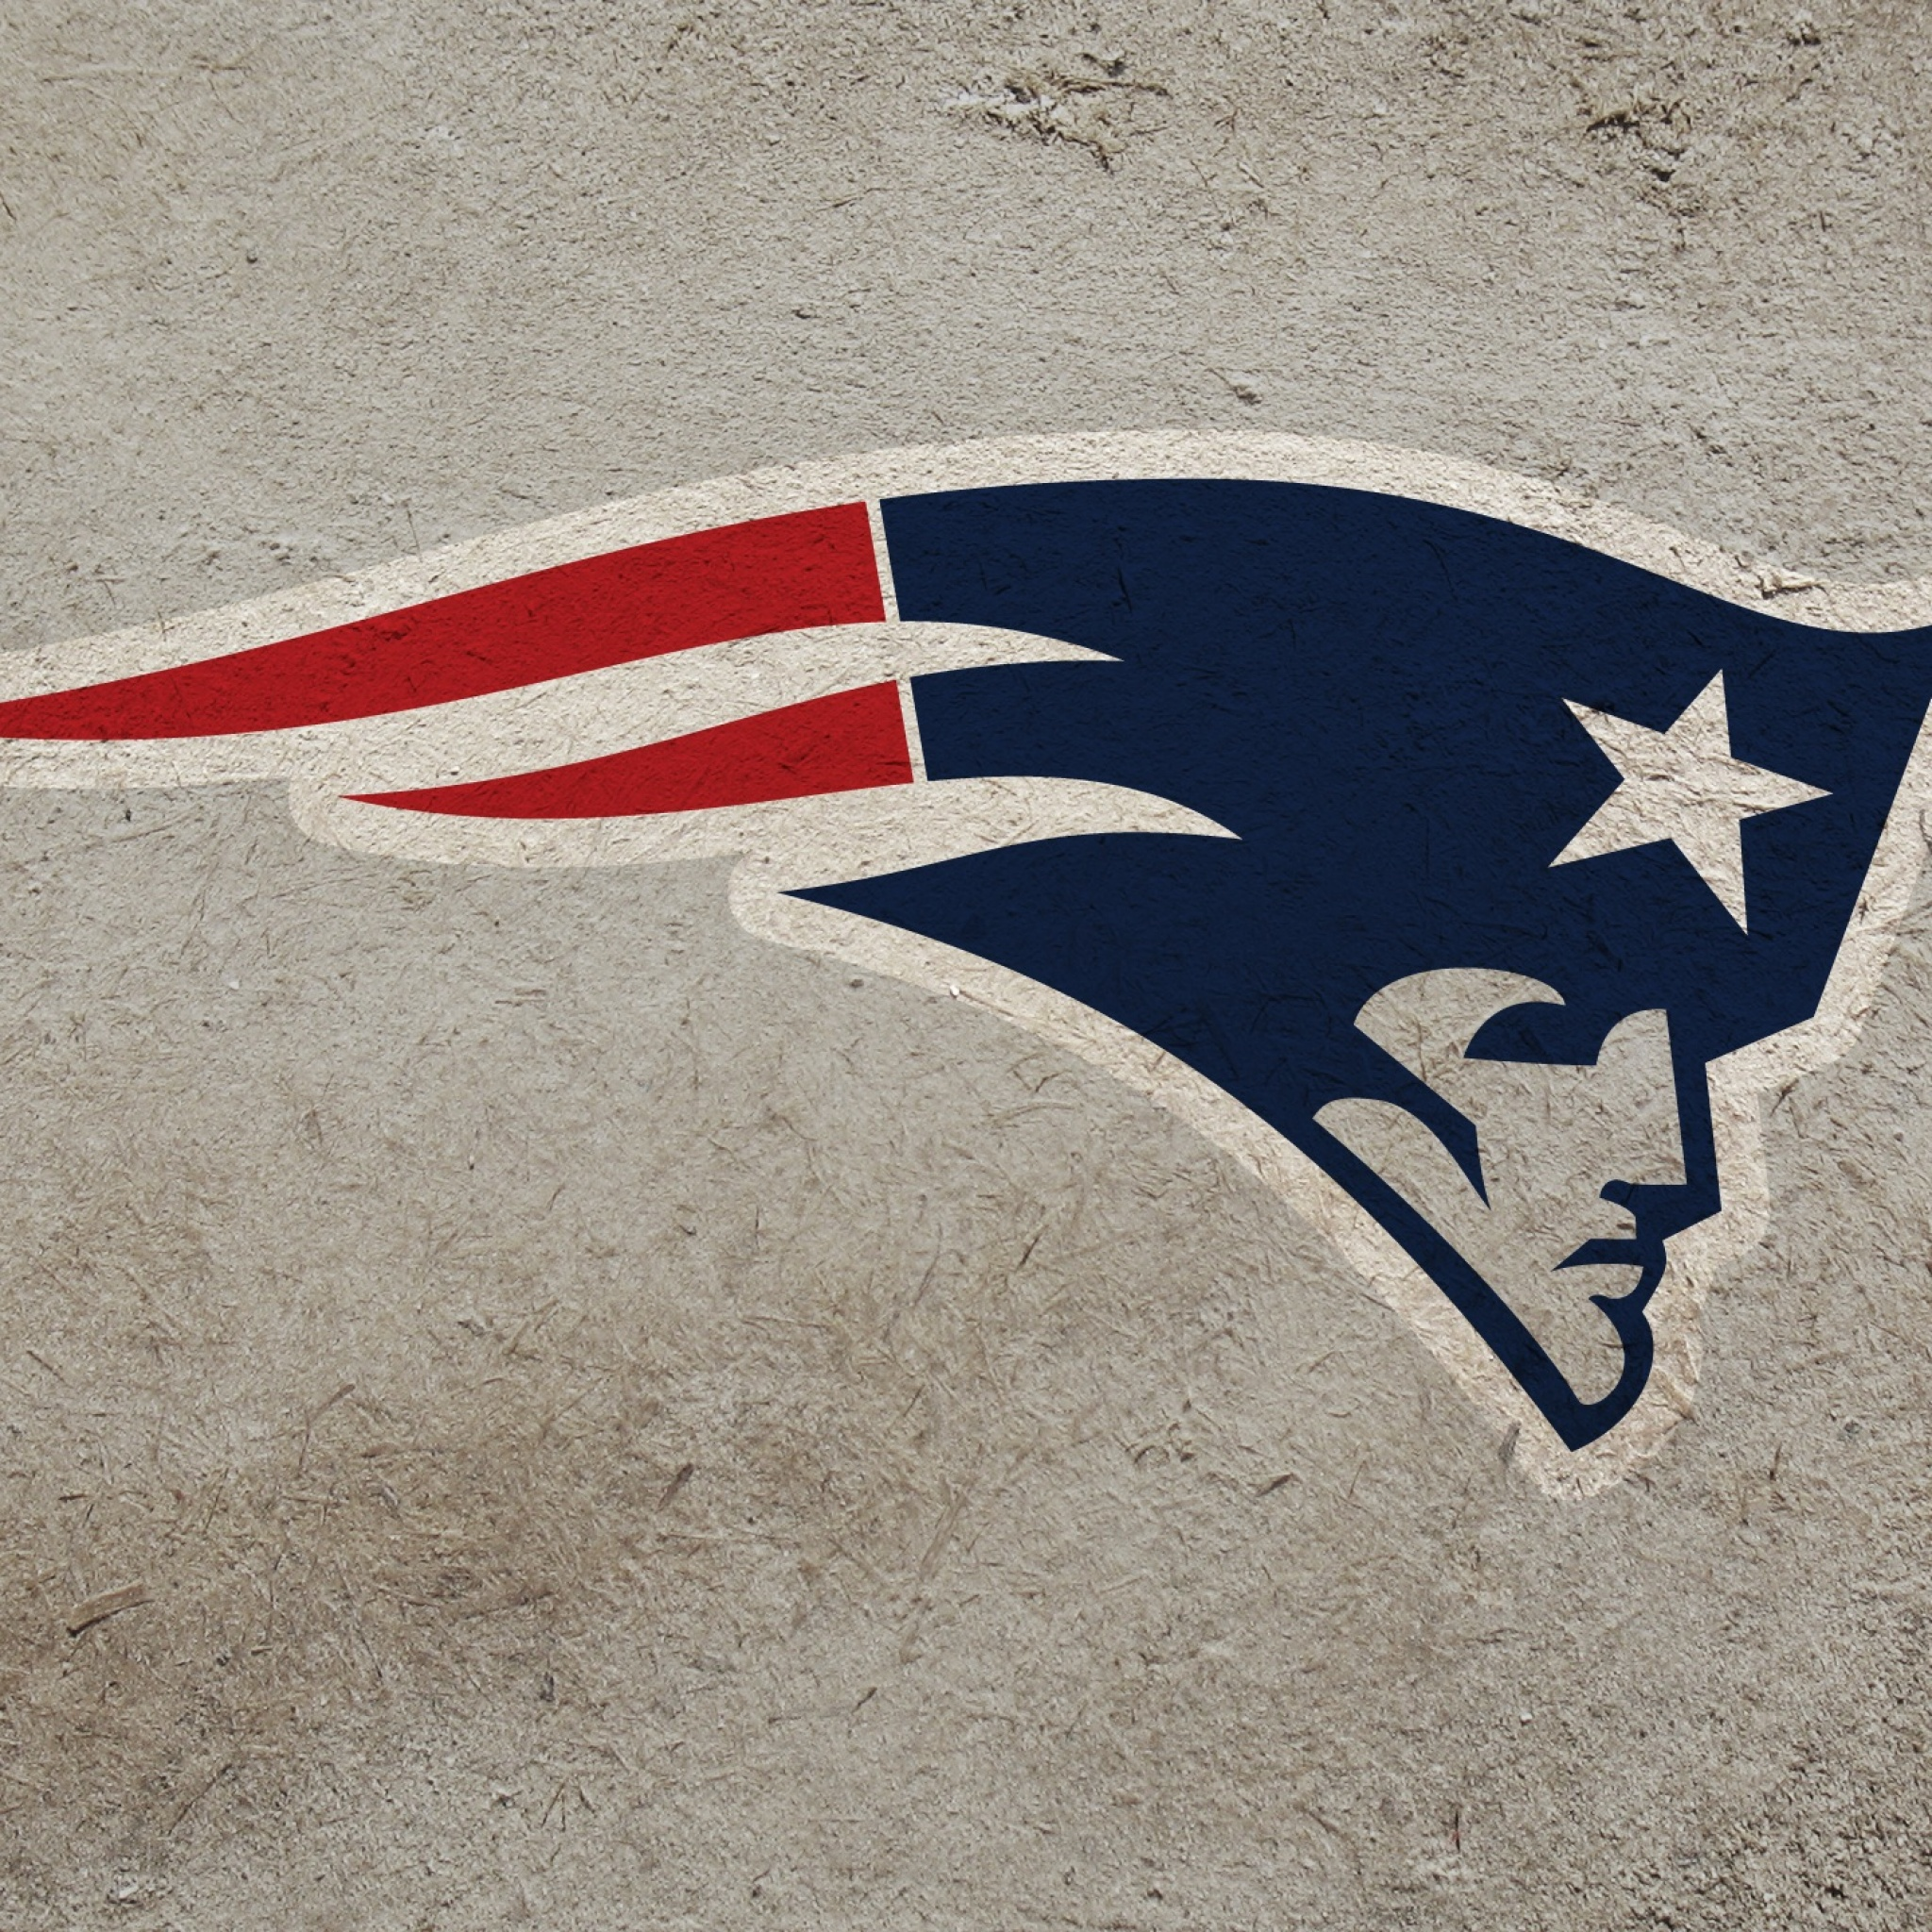 Badass Wallpapers Hd Superbowl Xlix Wallpapers For Iphone And Ipad